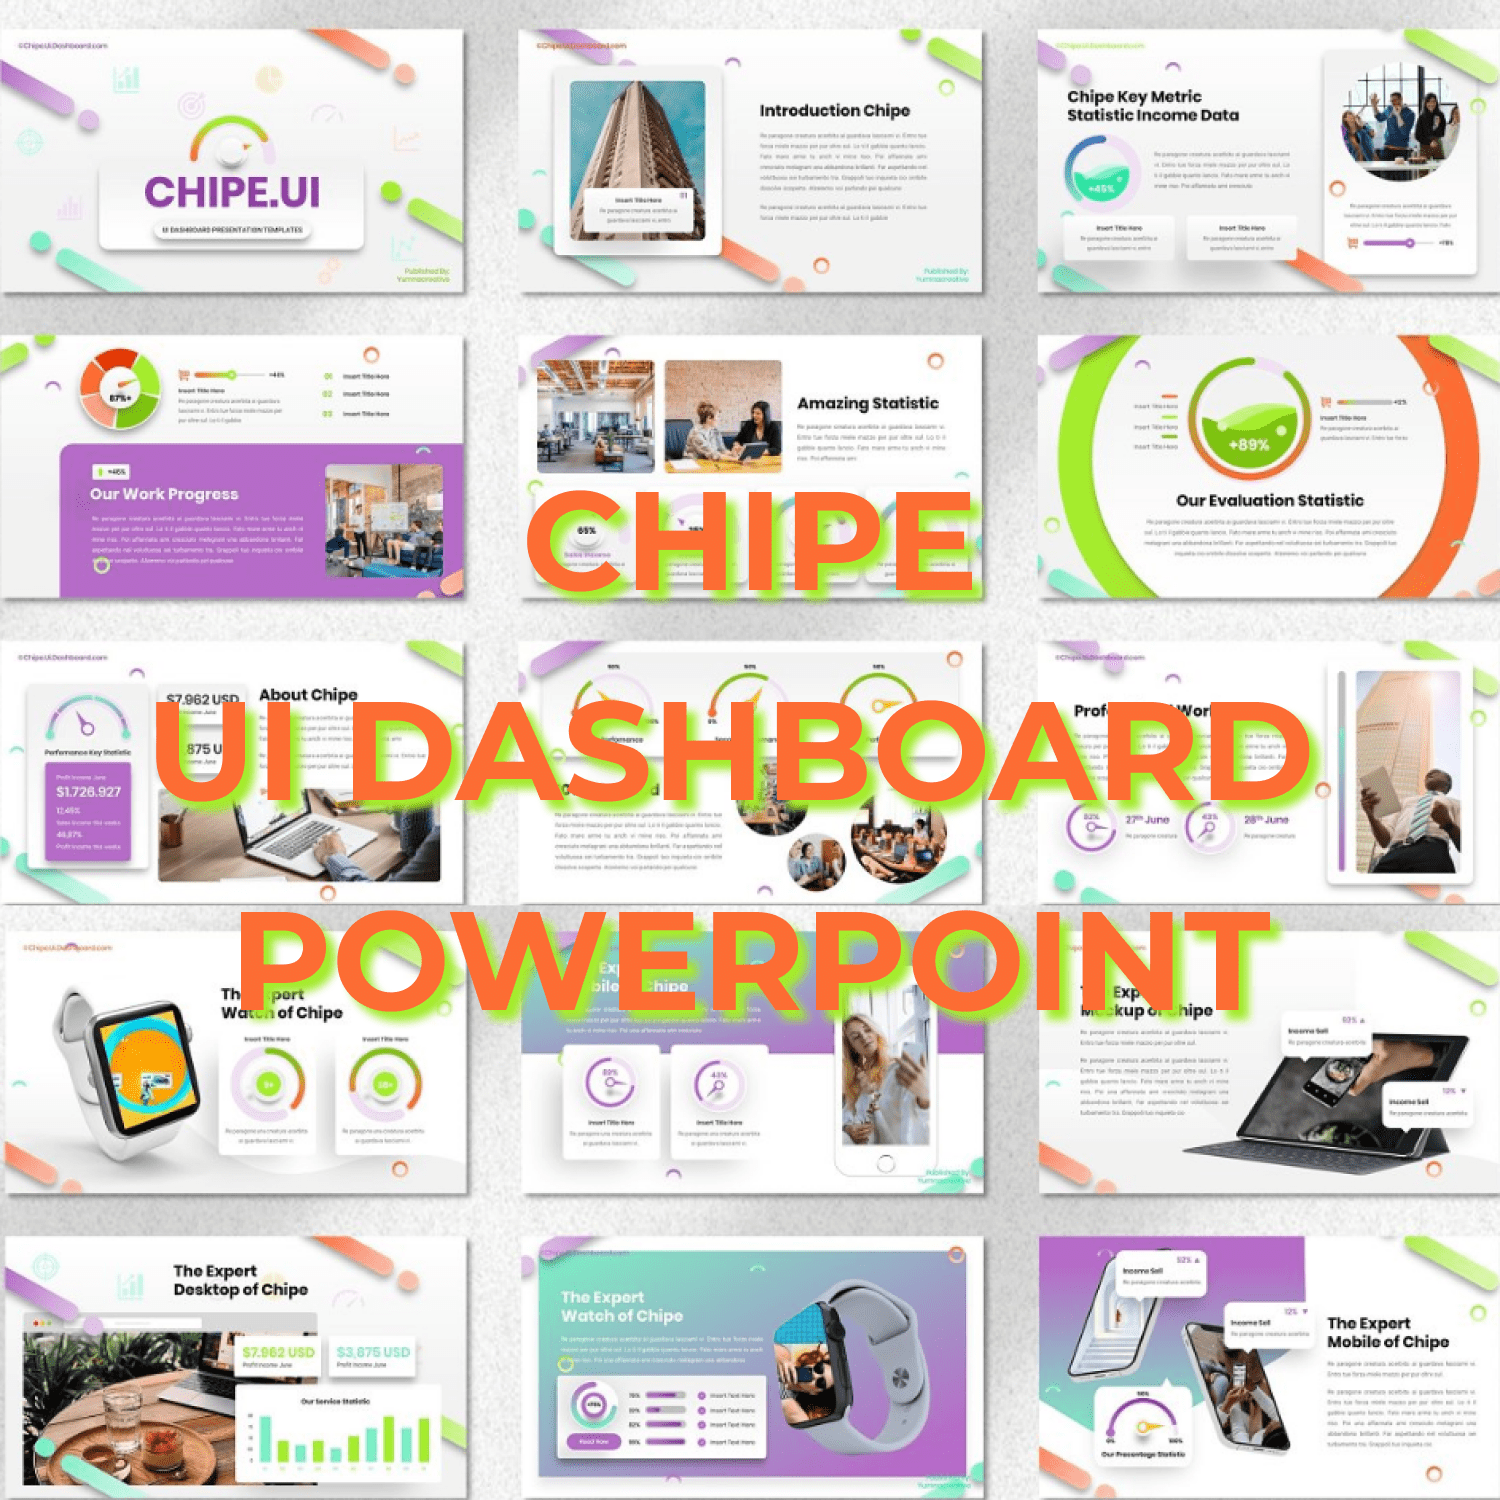 Chipe - UI Dashboard Powerpoint main cover.